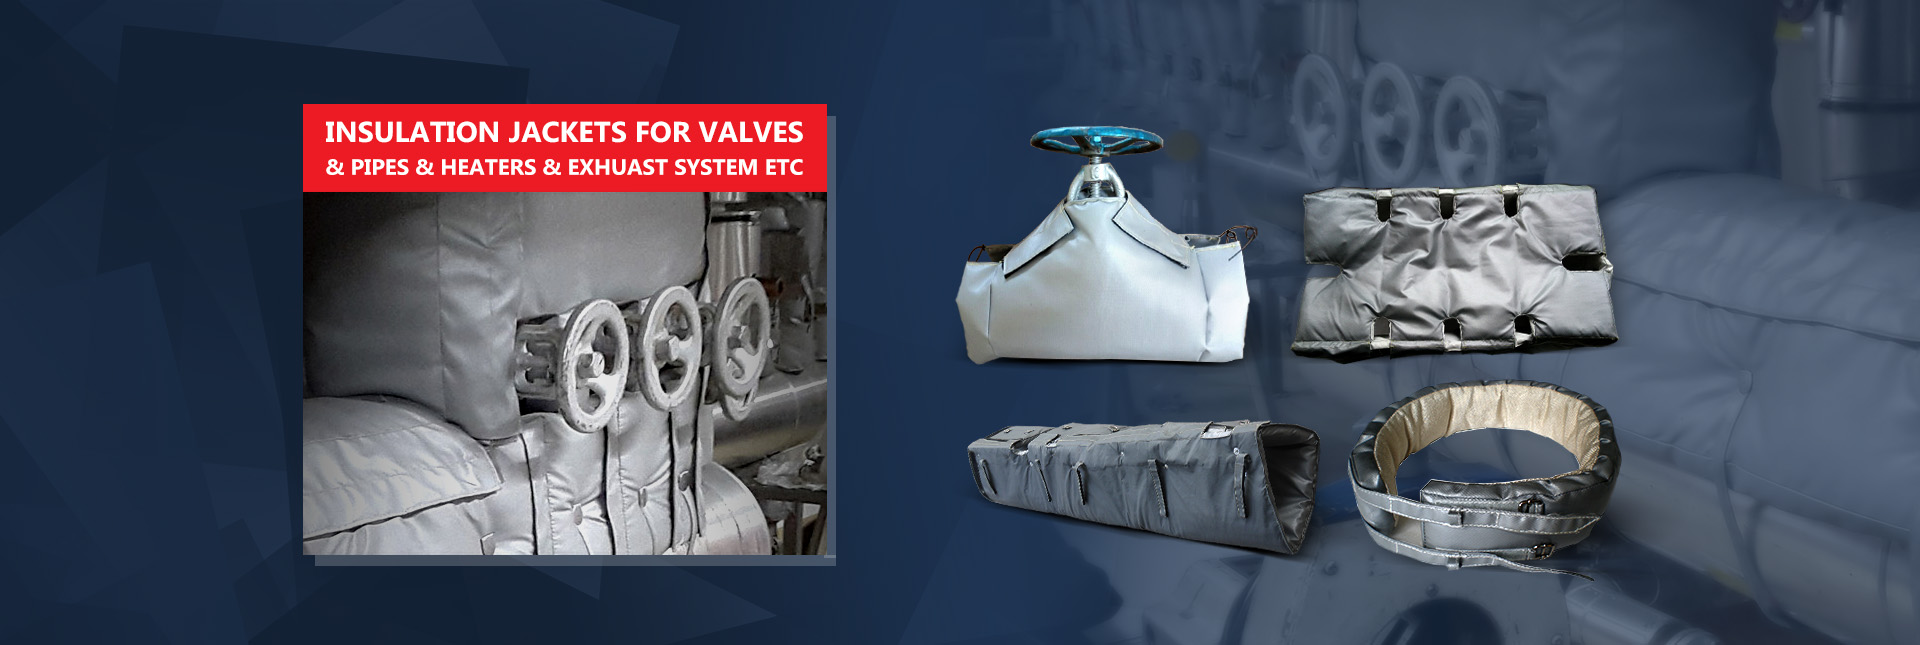 Insulation Jackets for valves & pipes & heaters & exhuast system etc